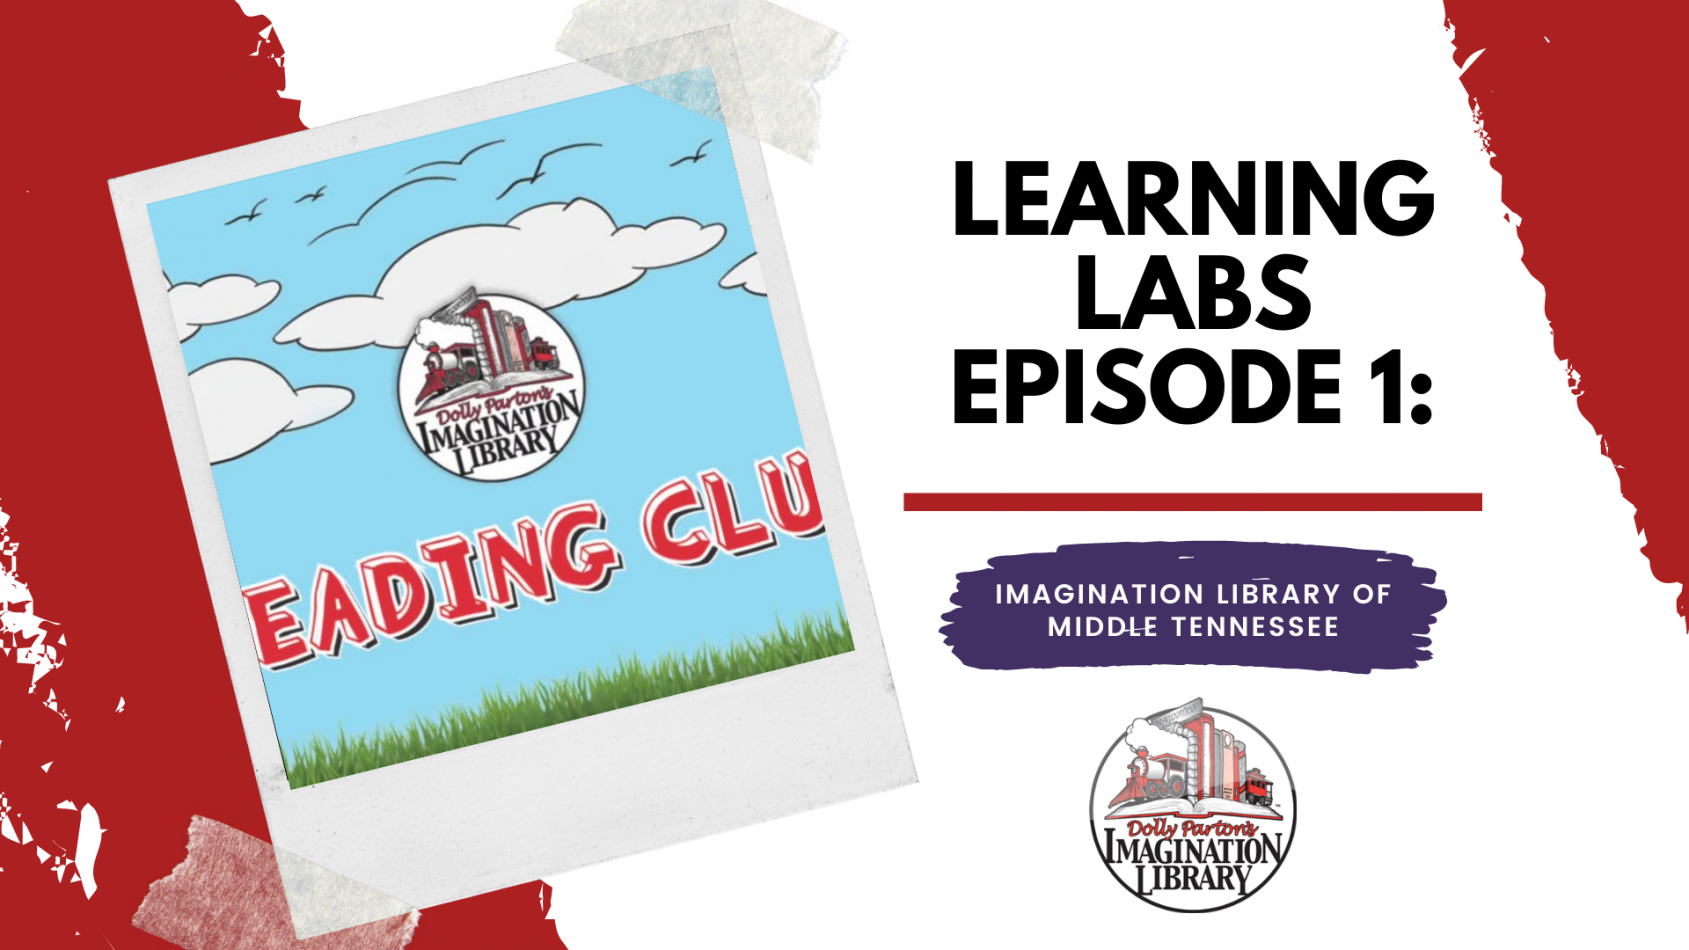 Learning Labs Episode 1